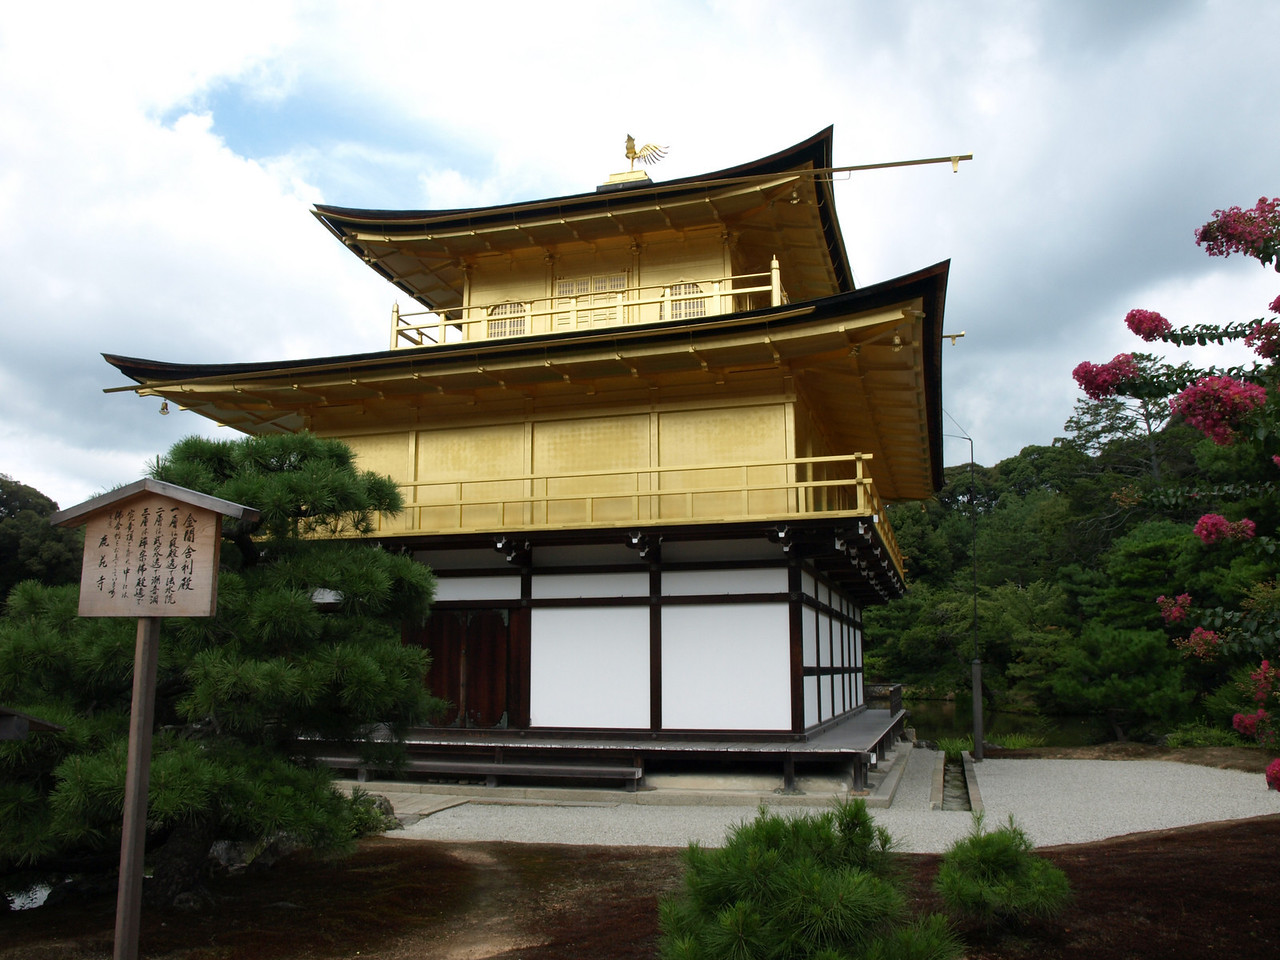 This structure was originally the home of Kintsune Saionji (mentioned earlier in the bit about the bell) in 1220. In 1394, it was taken over by Yoshimitsu, the third Shogun of Ashikaga, who rebuilt it into his own retirement home.